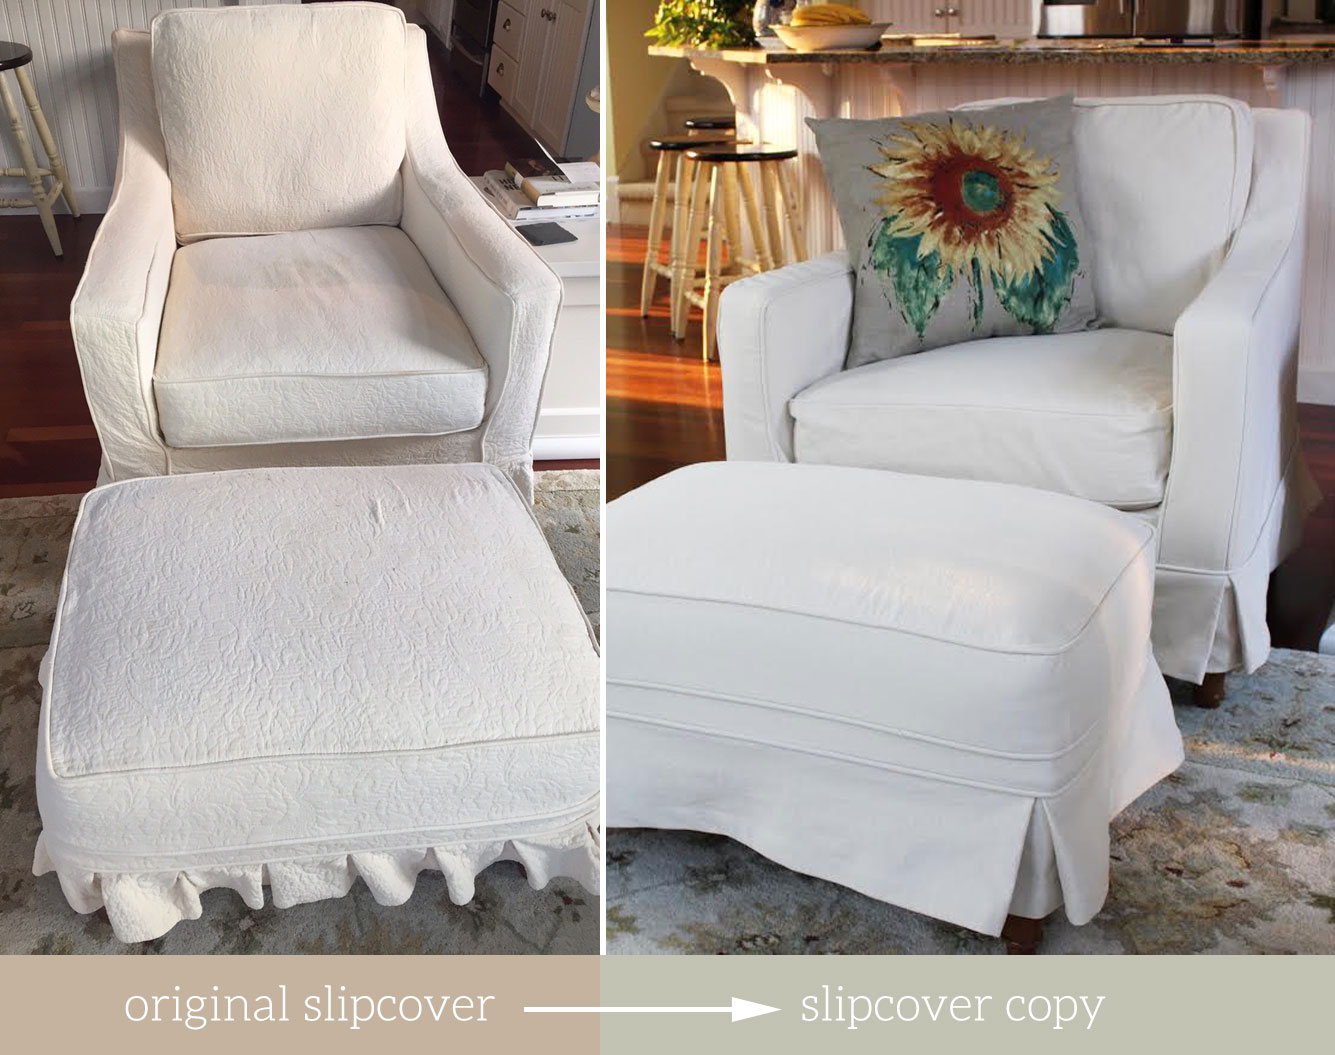 Replacement Slipcovers For Sofas And Armchairs. Chair Slipcover Replicates  At The Slipcover Maker